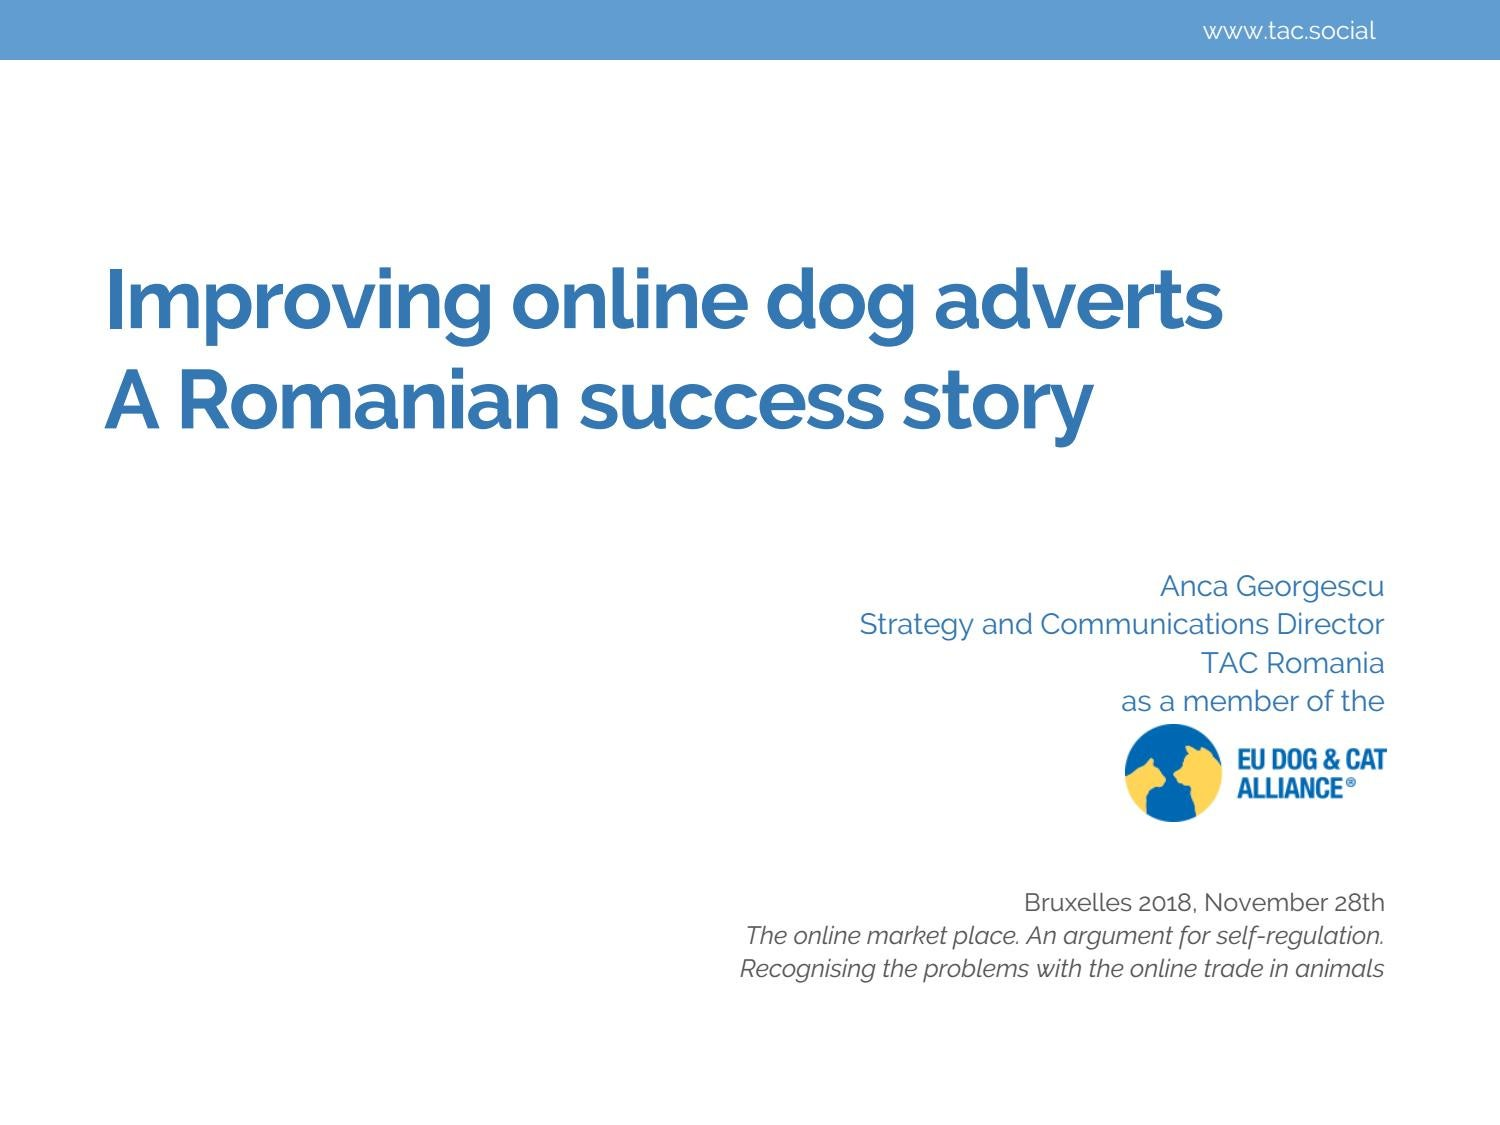 Improving online dog adverts, a RO success story OLX by TAC